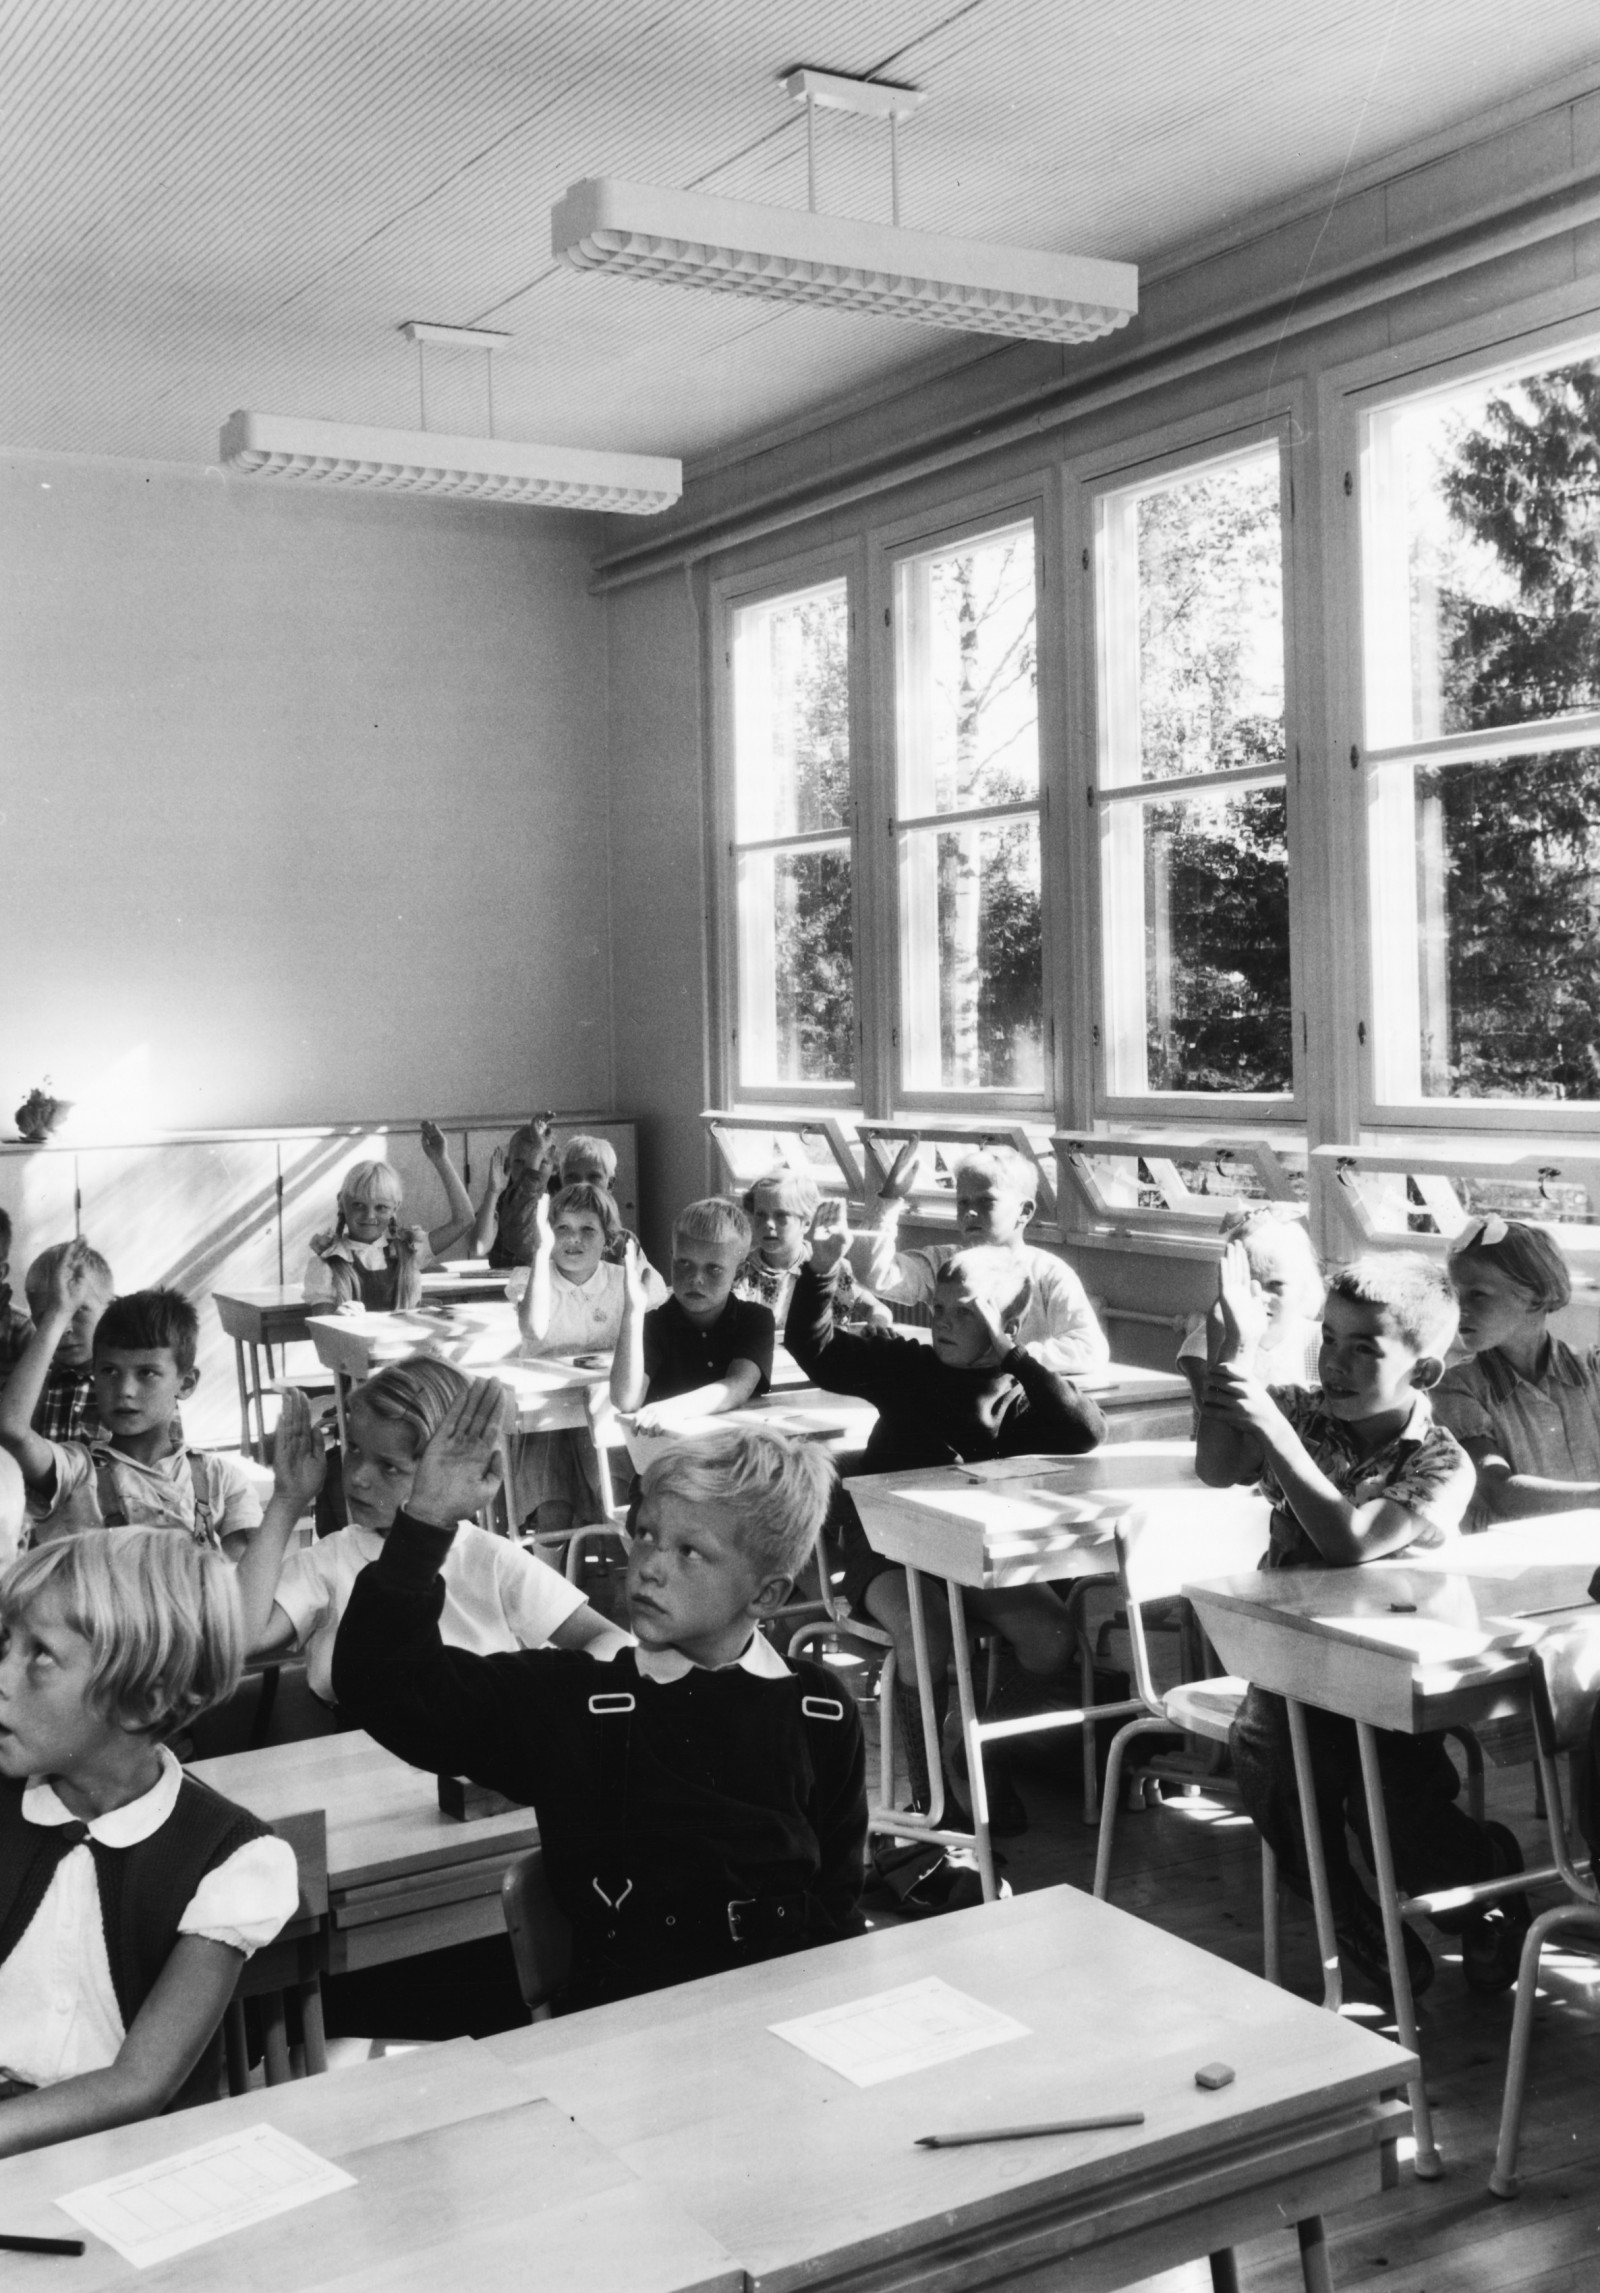 Black and white photo of Puutalo school classroom, where a class is in session. The pupils are raising their hands.